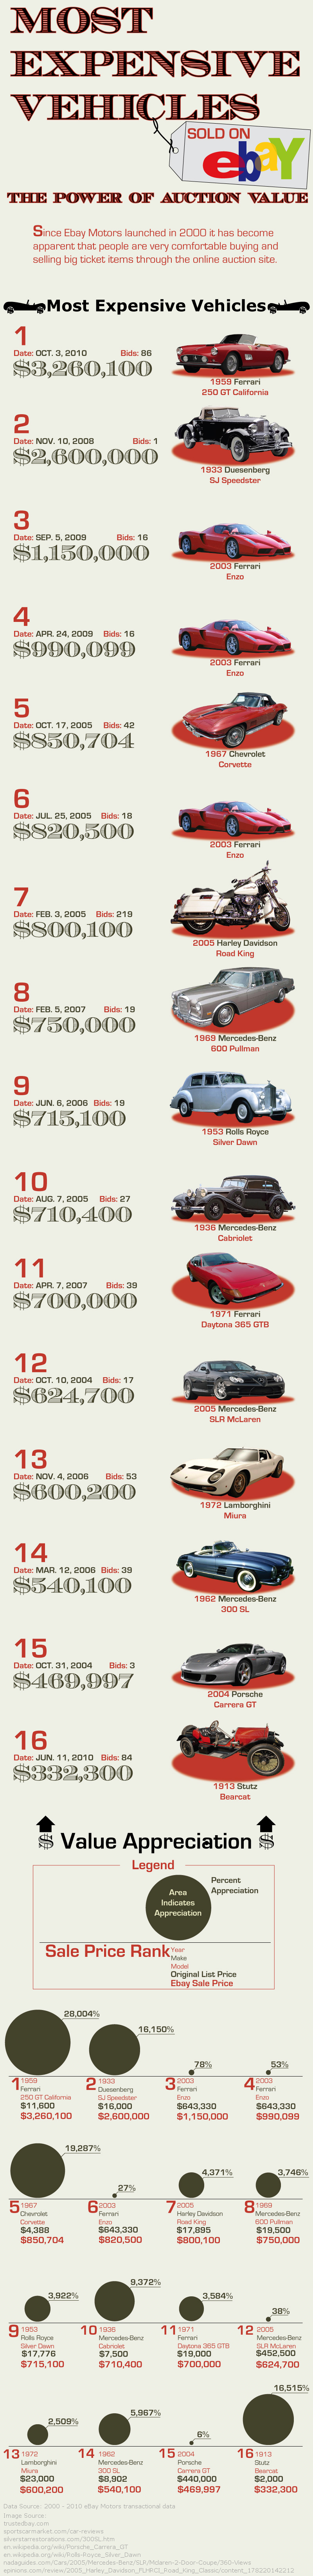 Most-Expensive-Car-Ever-Sold